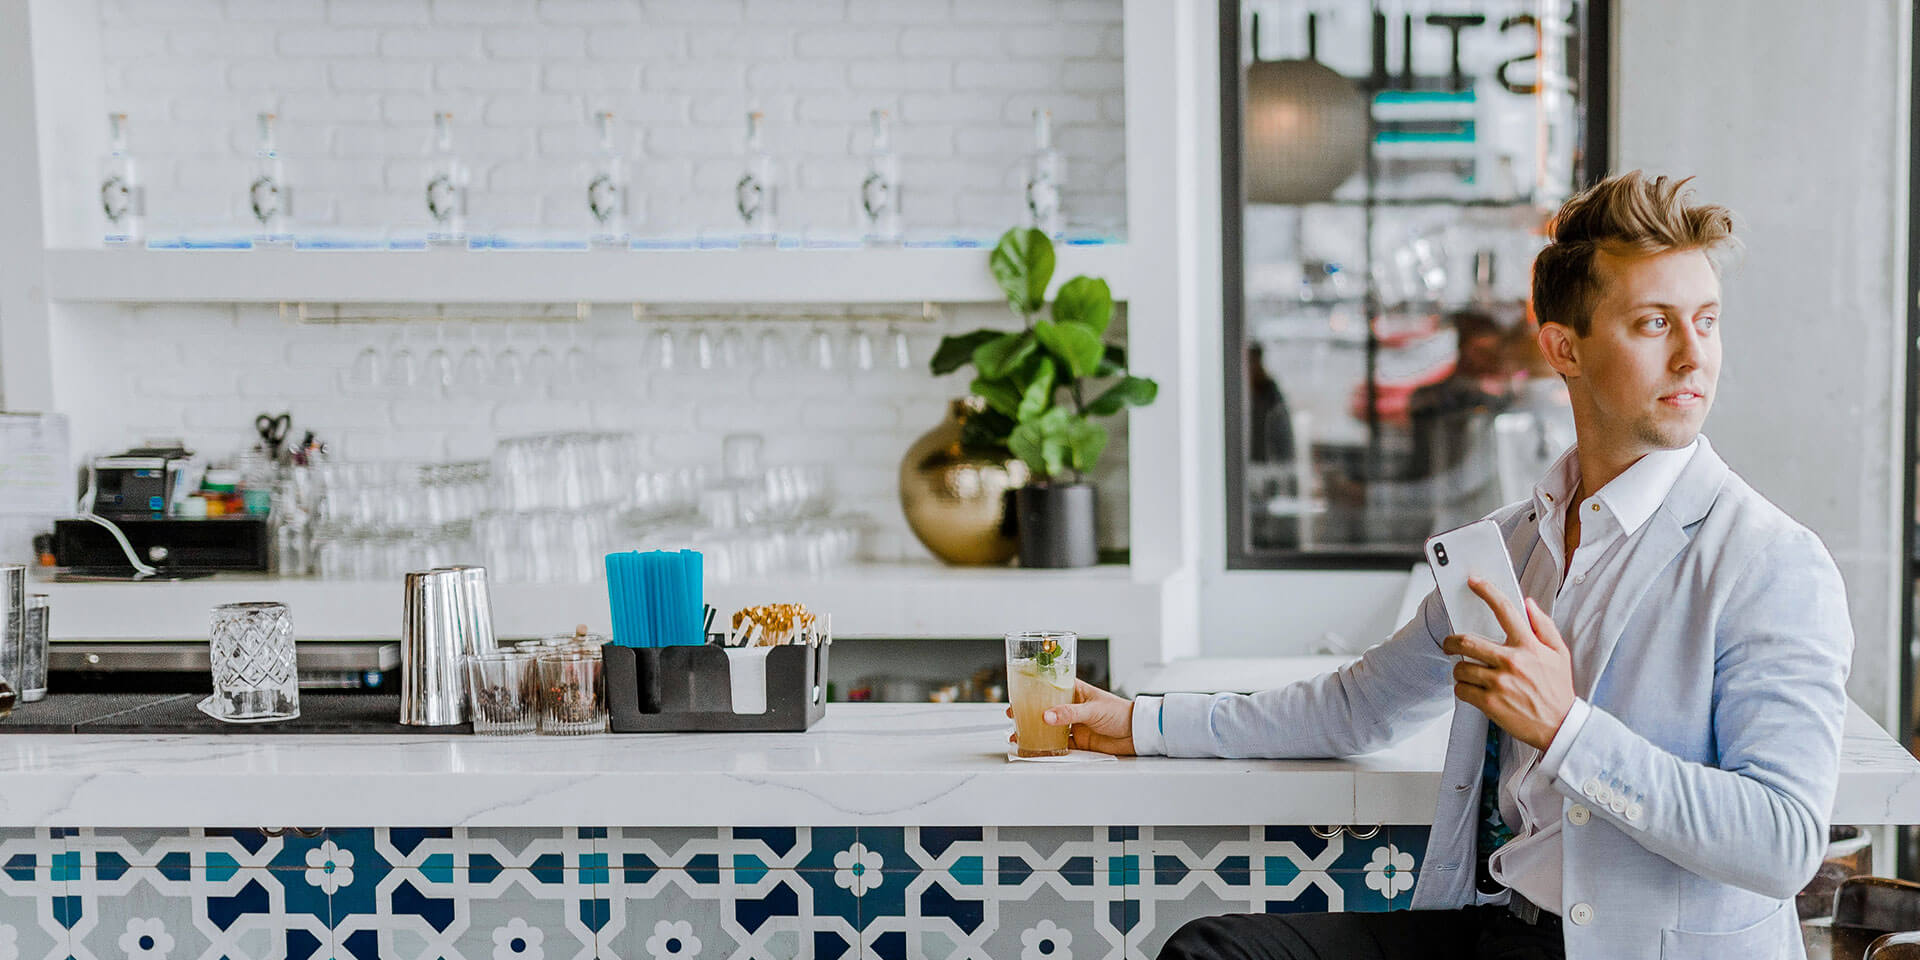 3 ways restaurants can use technology to improve the customer experience